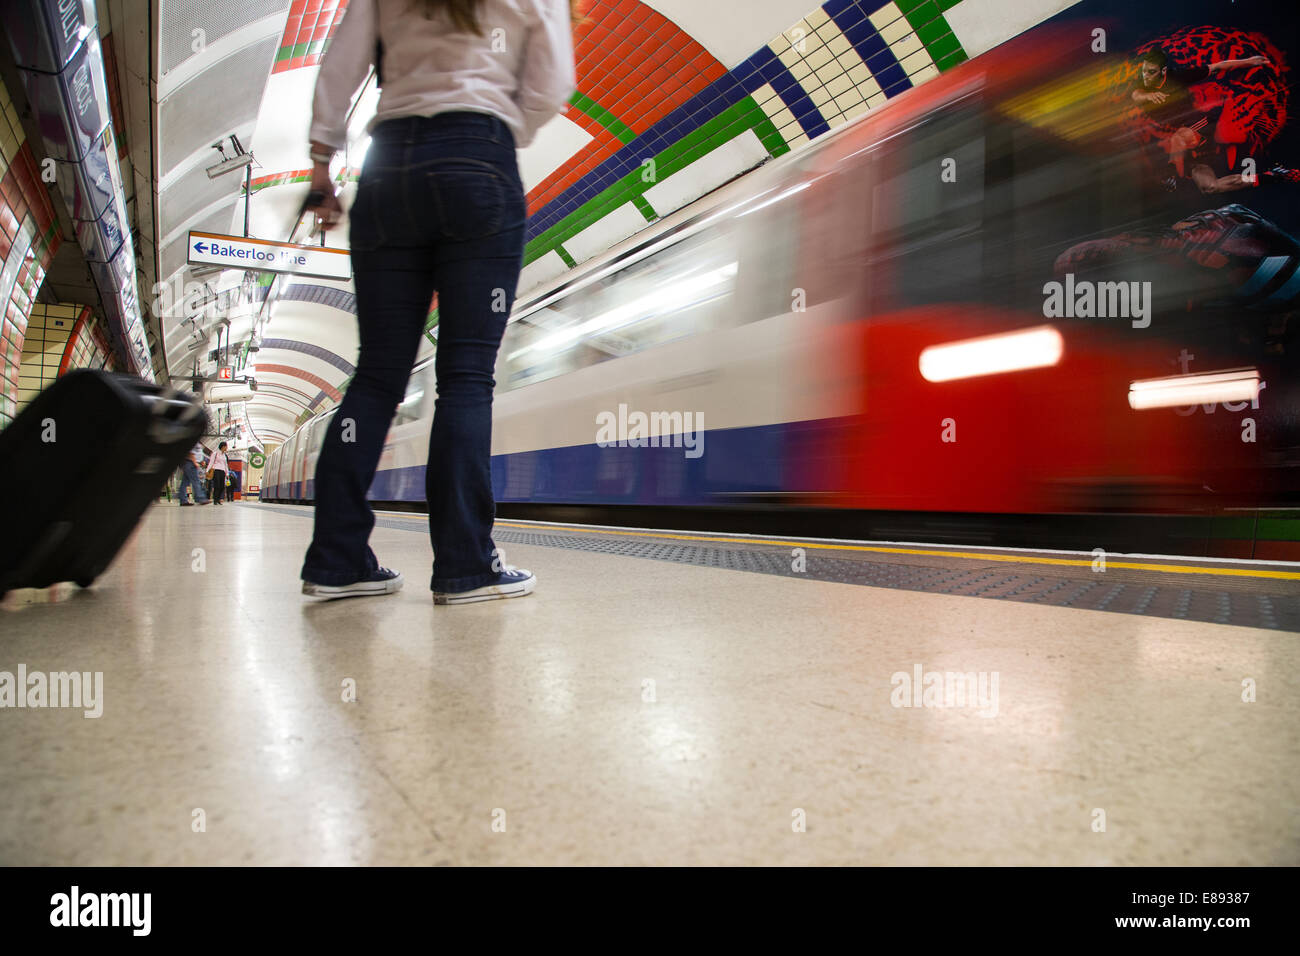 London Underground system opened in 1863-11 lines with 270 stations and 250 miles of track - Stock Image